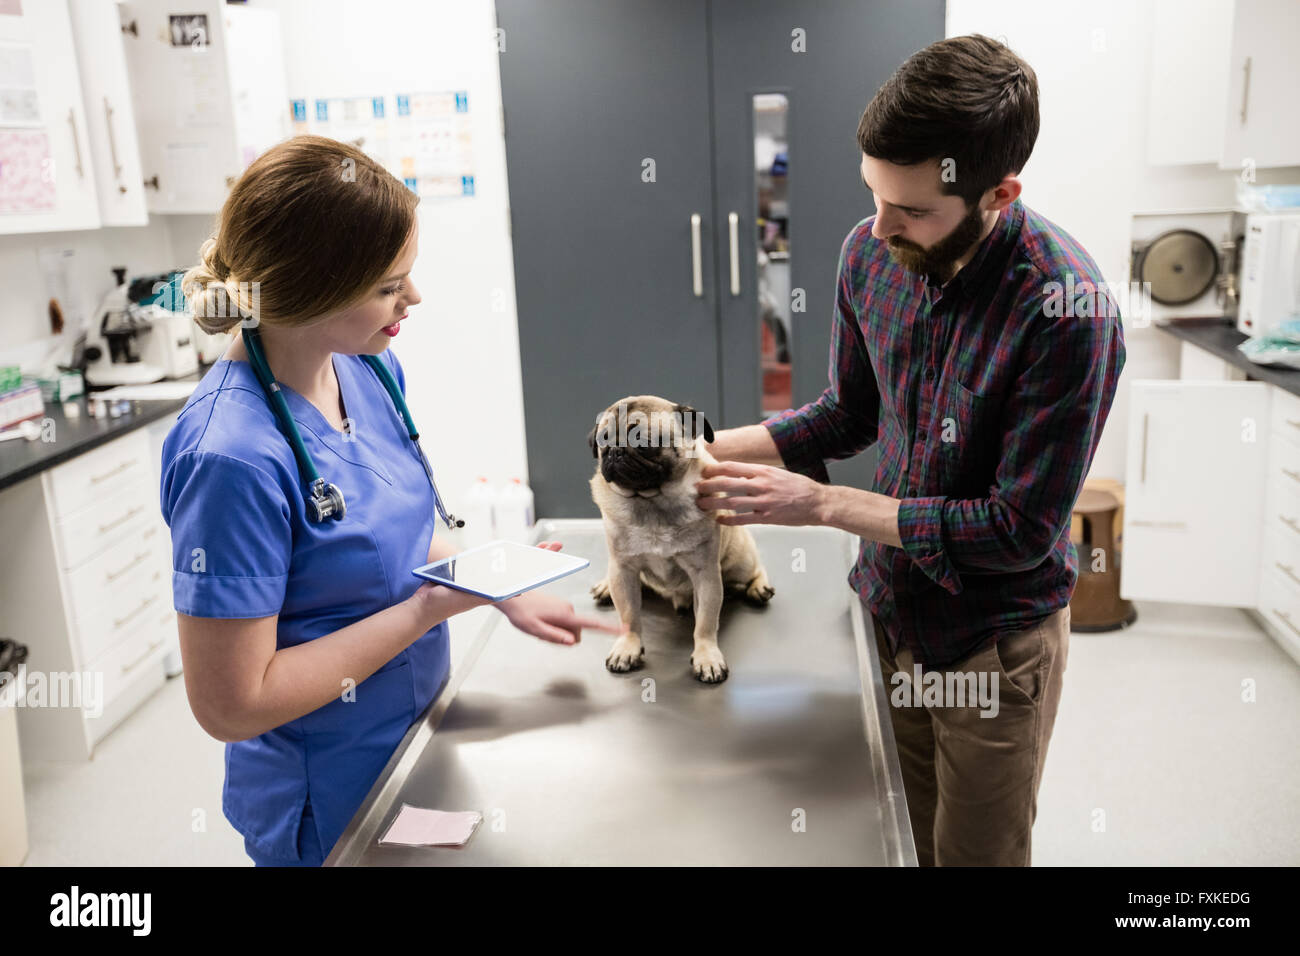 Vet examining dog with its owner - Stock Image